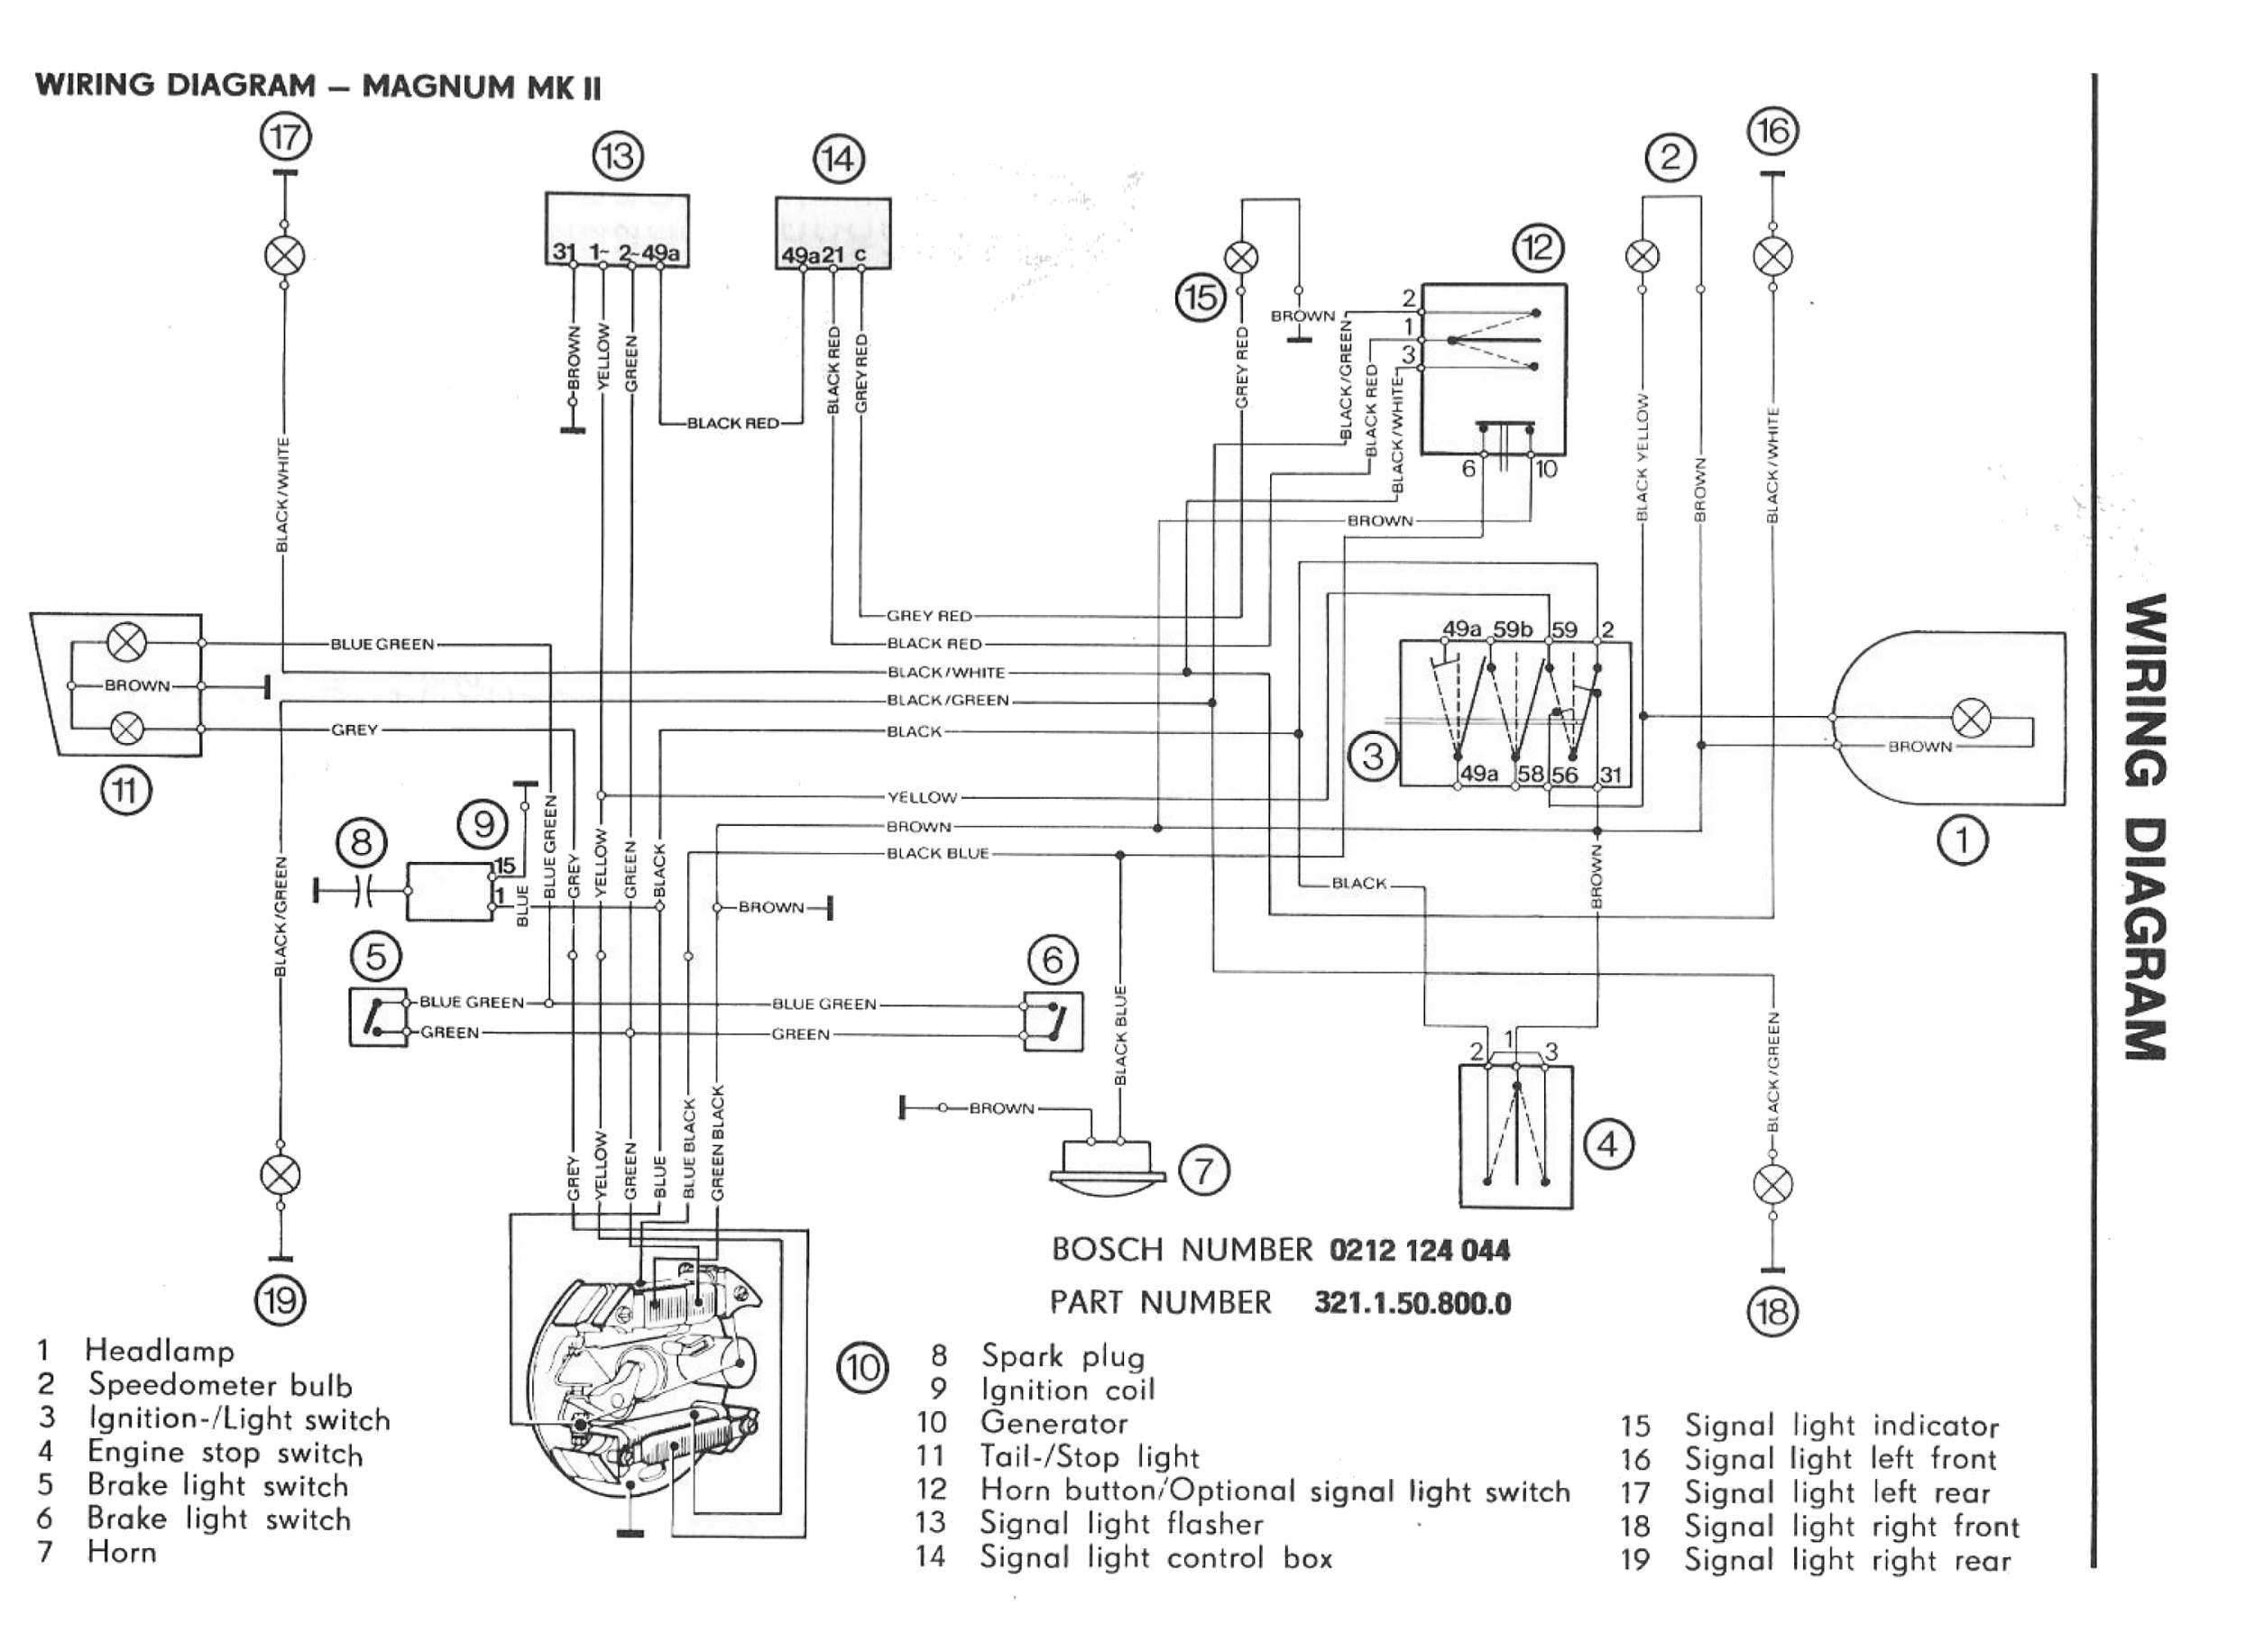 Pride Mobility Scooter Wiring Diagram Madami Wiring Diagram Data Schematics Wiring Diagram • Of Pride Mobility Scooter Wiring Diagram